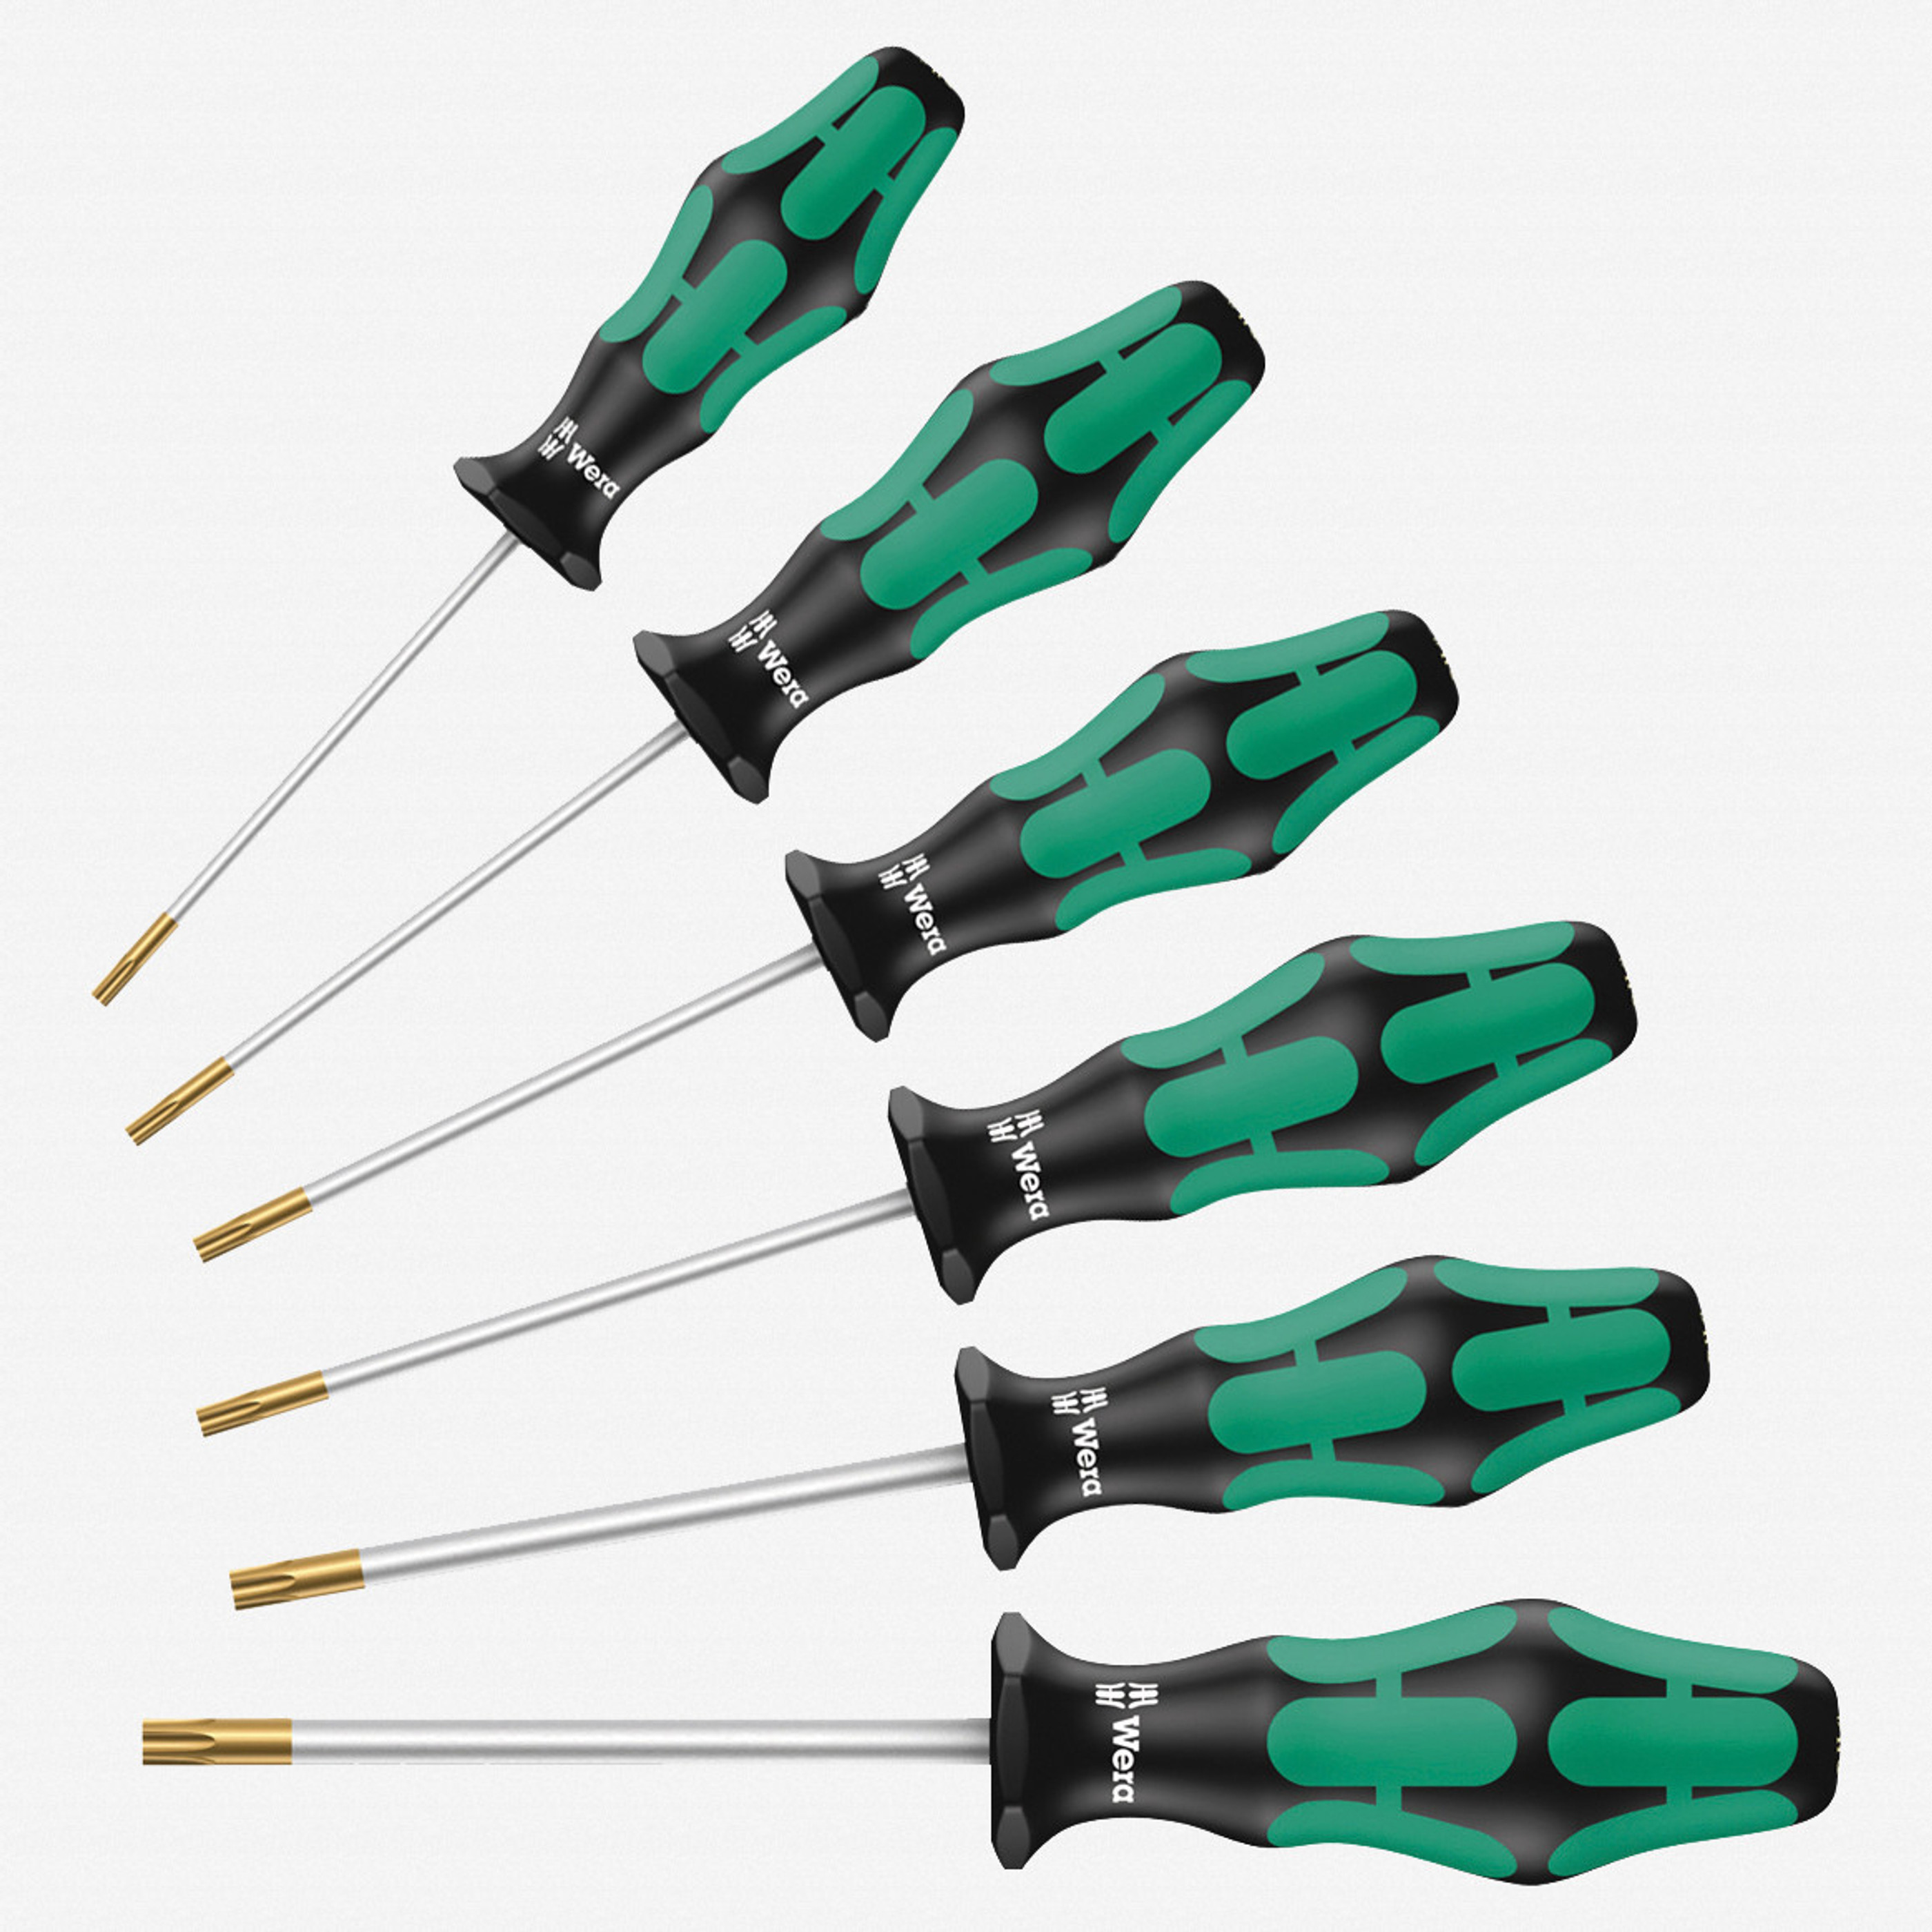 wera tools 345221 kraftform plus torx hf screwdriver set. Black Bedroom Furniture Sets. Home Design Ideas